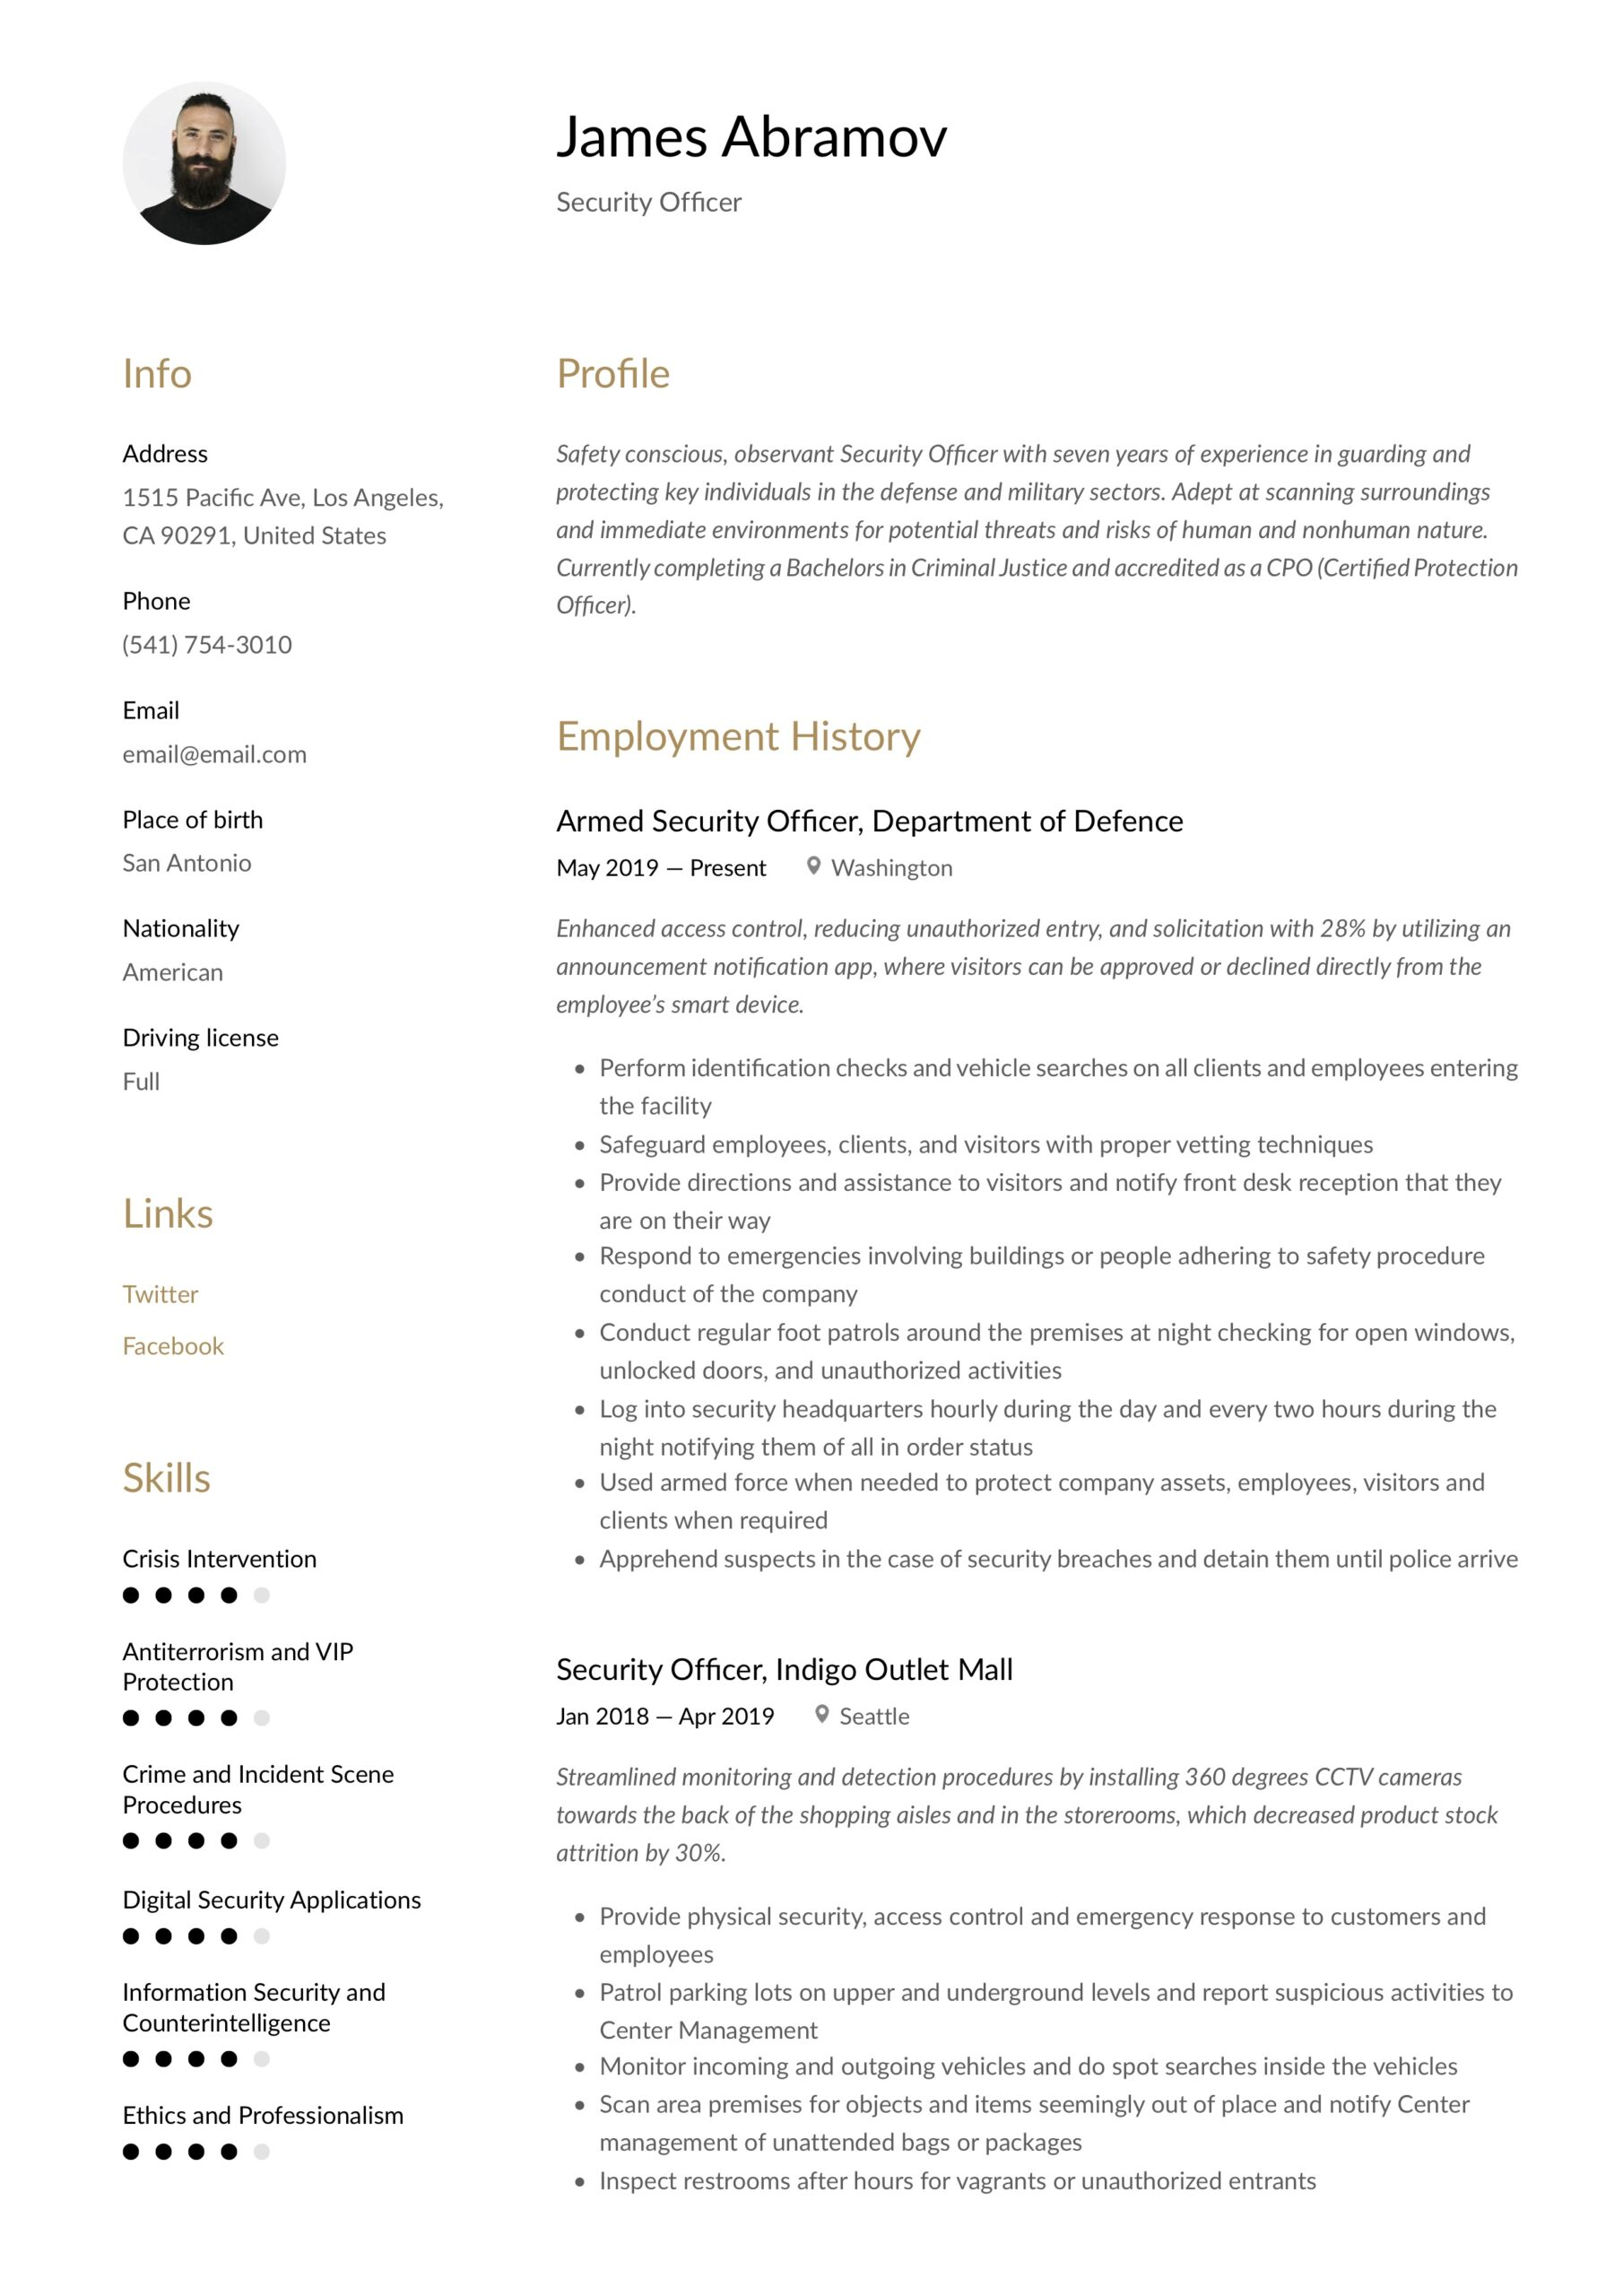 security officer resume writing guide examples protection sample template sharelatex Resume Protection Officer Resume Sample